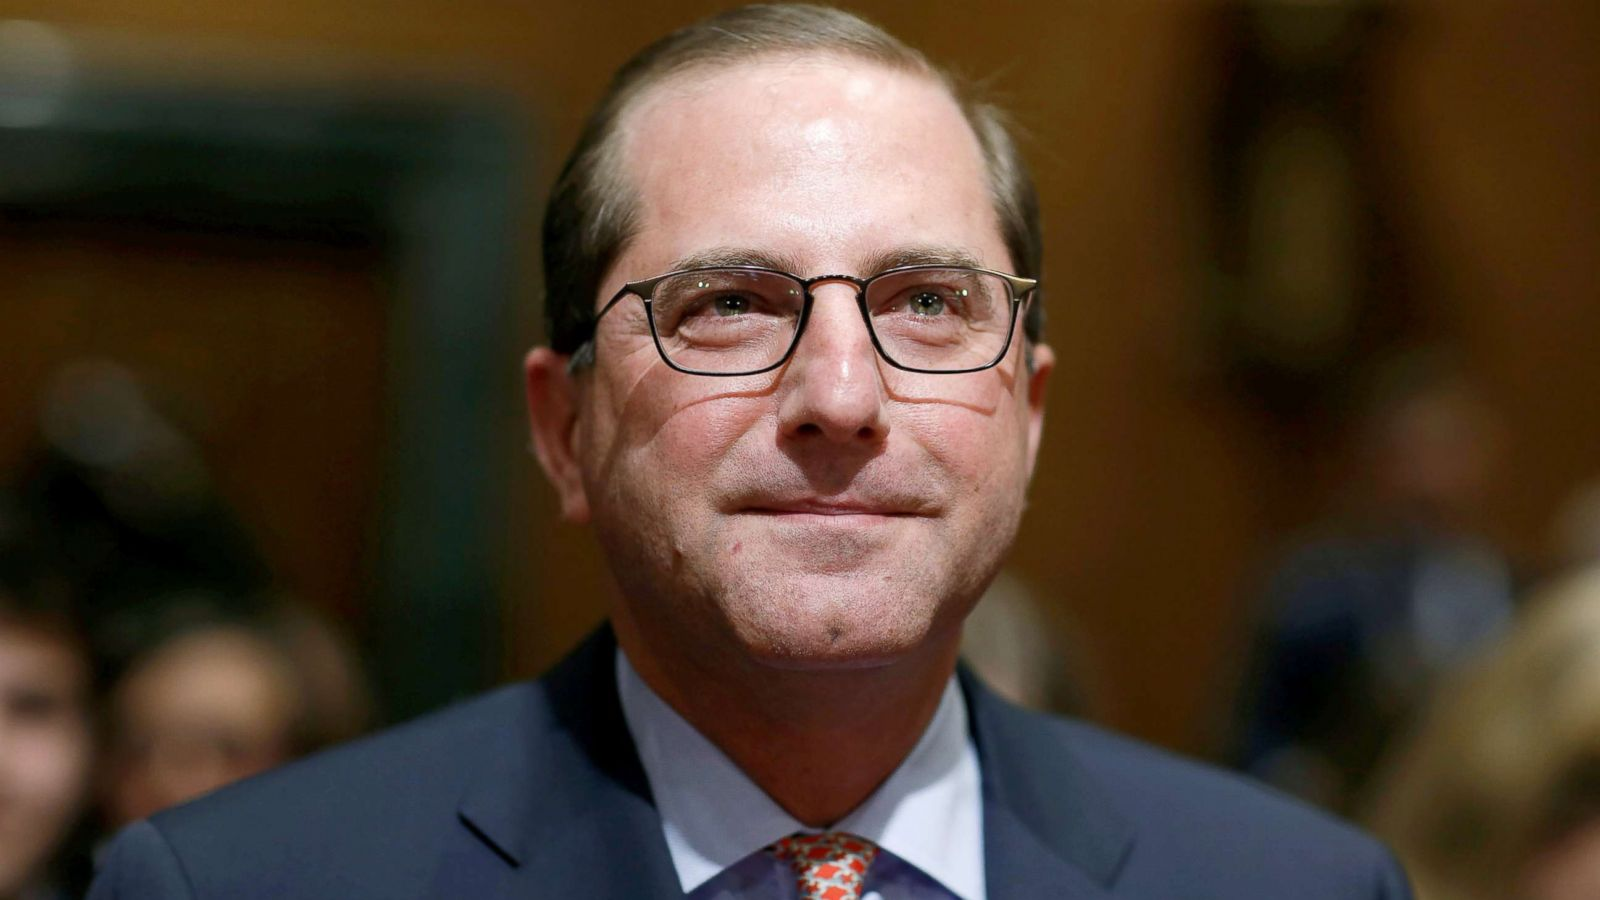 U.S. Health Secretary Says No to Morning-After Pill for Younger Teens U.S. Health Secretary Says No to Morning-After Pill for Younger Teens new photo